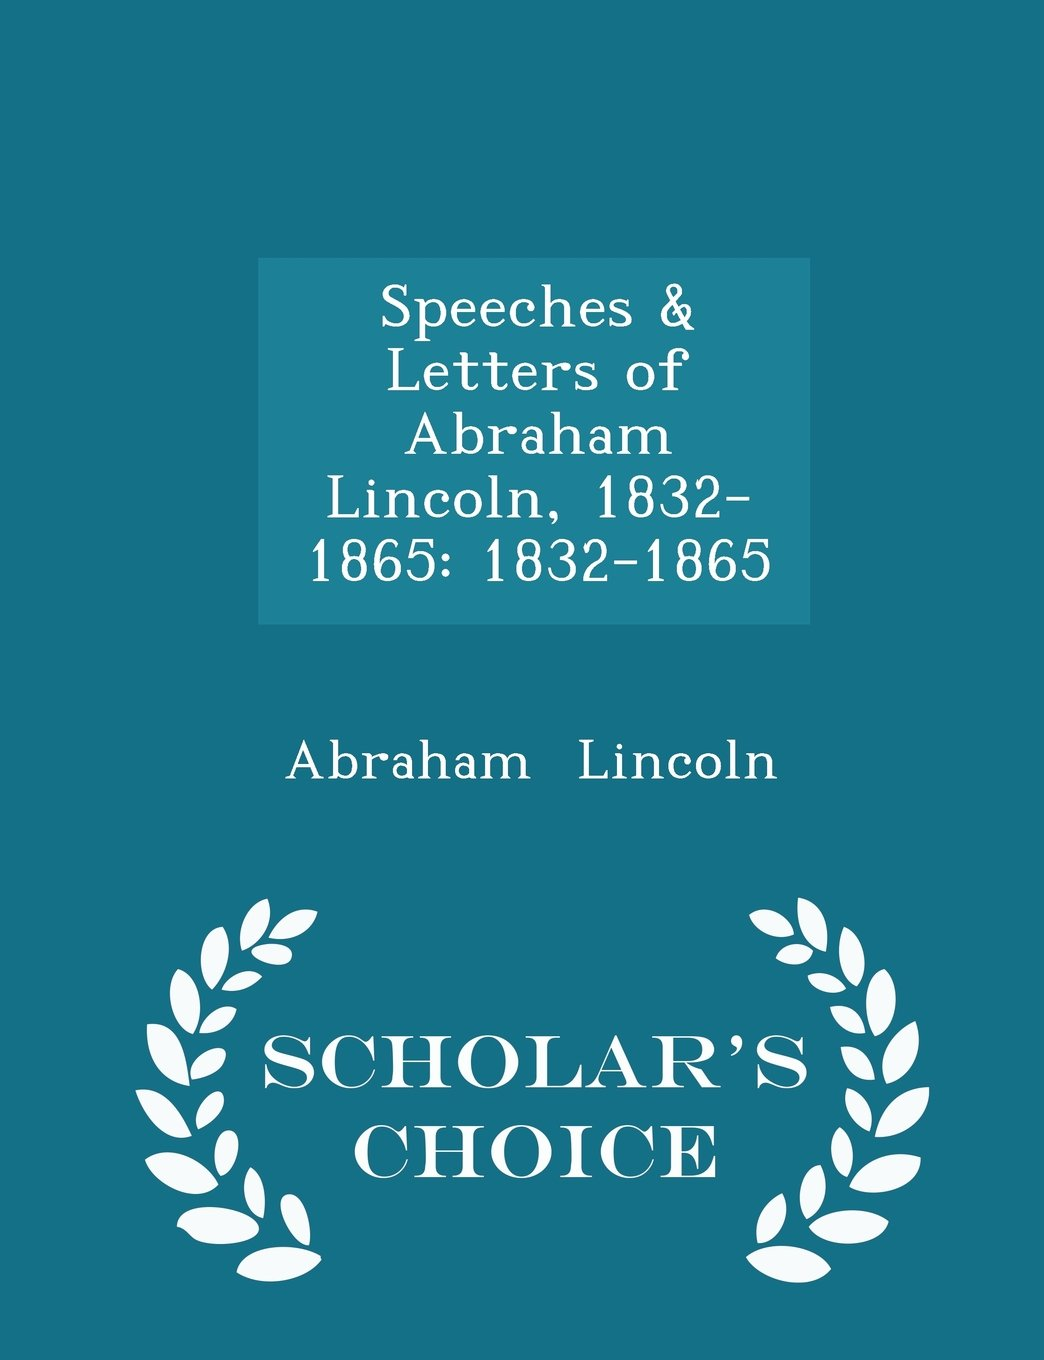 Read Online Speeches & Letters of Abraham Lincoln, 1832-1865: 1832-1865 - Scholar's Choice Edition ebook